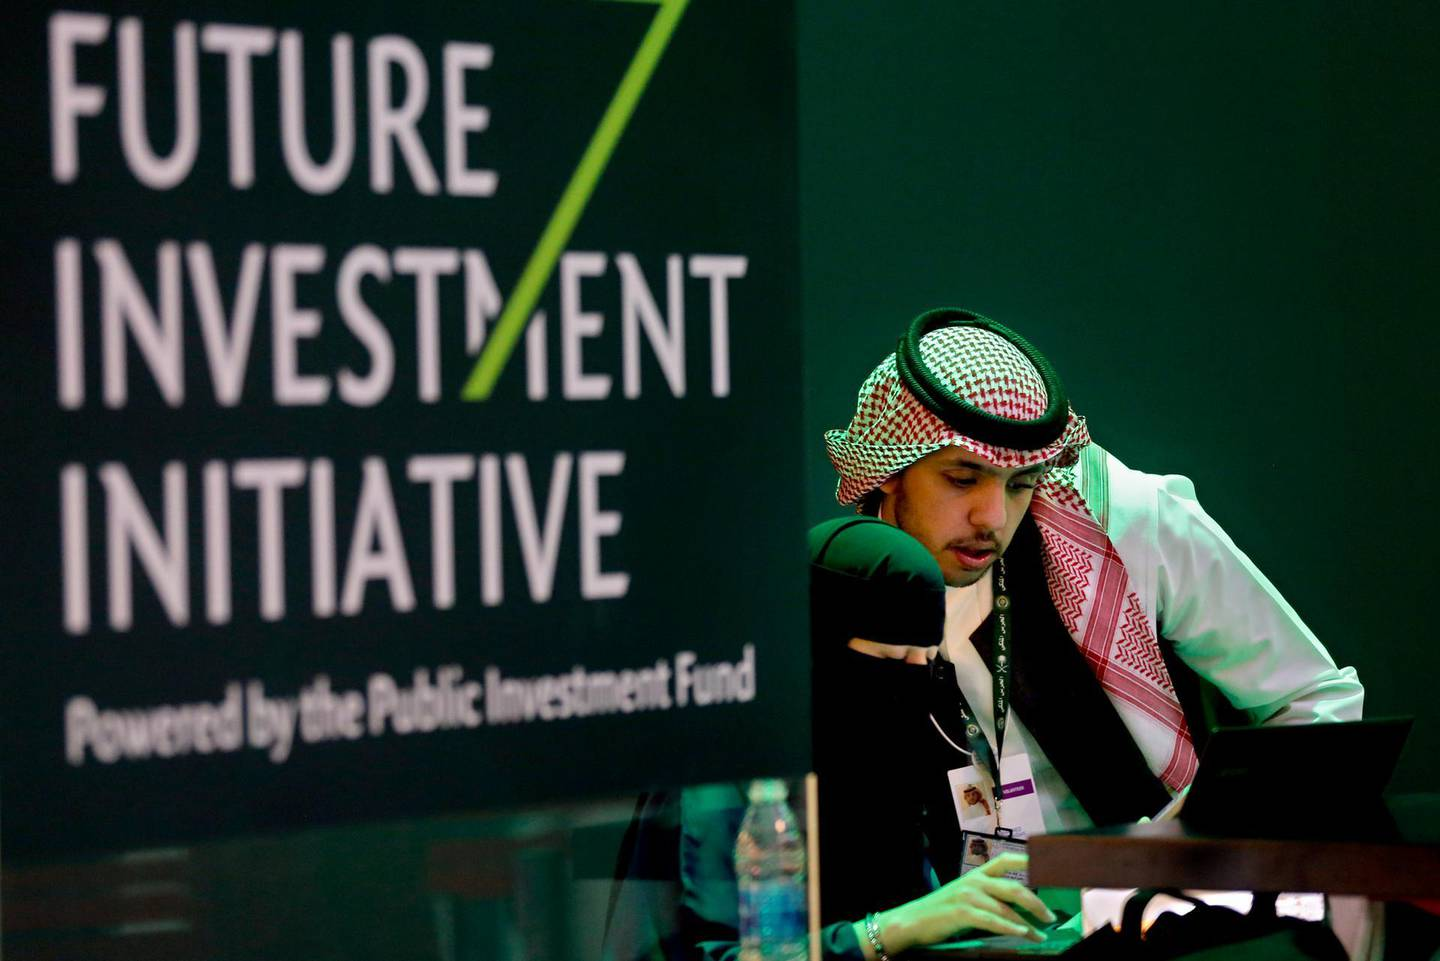 FILE - In this Oct. 22, 2018, file photo, Saudi employees print badges of participants of the Future Investment Initiative in Riyadh, Saudi Arabia. Lured by a long-looming stock offering of Saudi Arabia's massive state-run oil company, investors and business leaders have returned to the kingdom's capital for an investment forum overshadowed last year by the assassination of Washington Post columnist Jamal Khashoggi. (AP Photo/Amr Nabil, File)